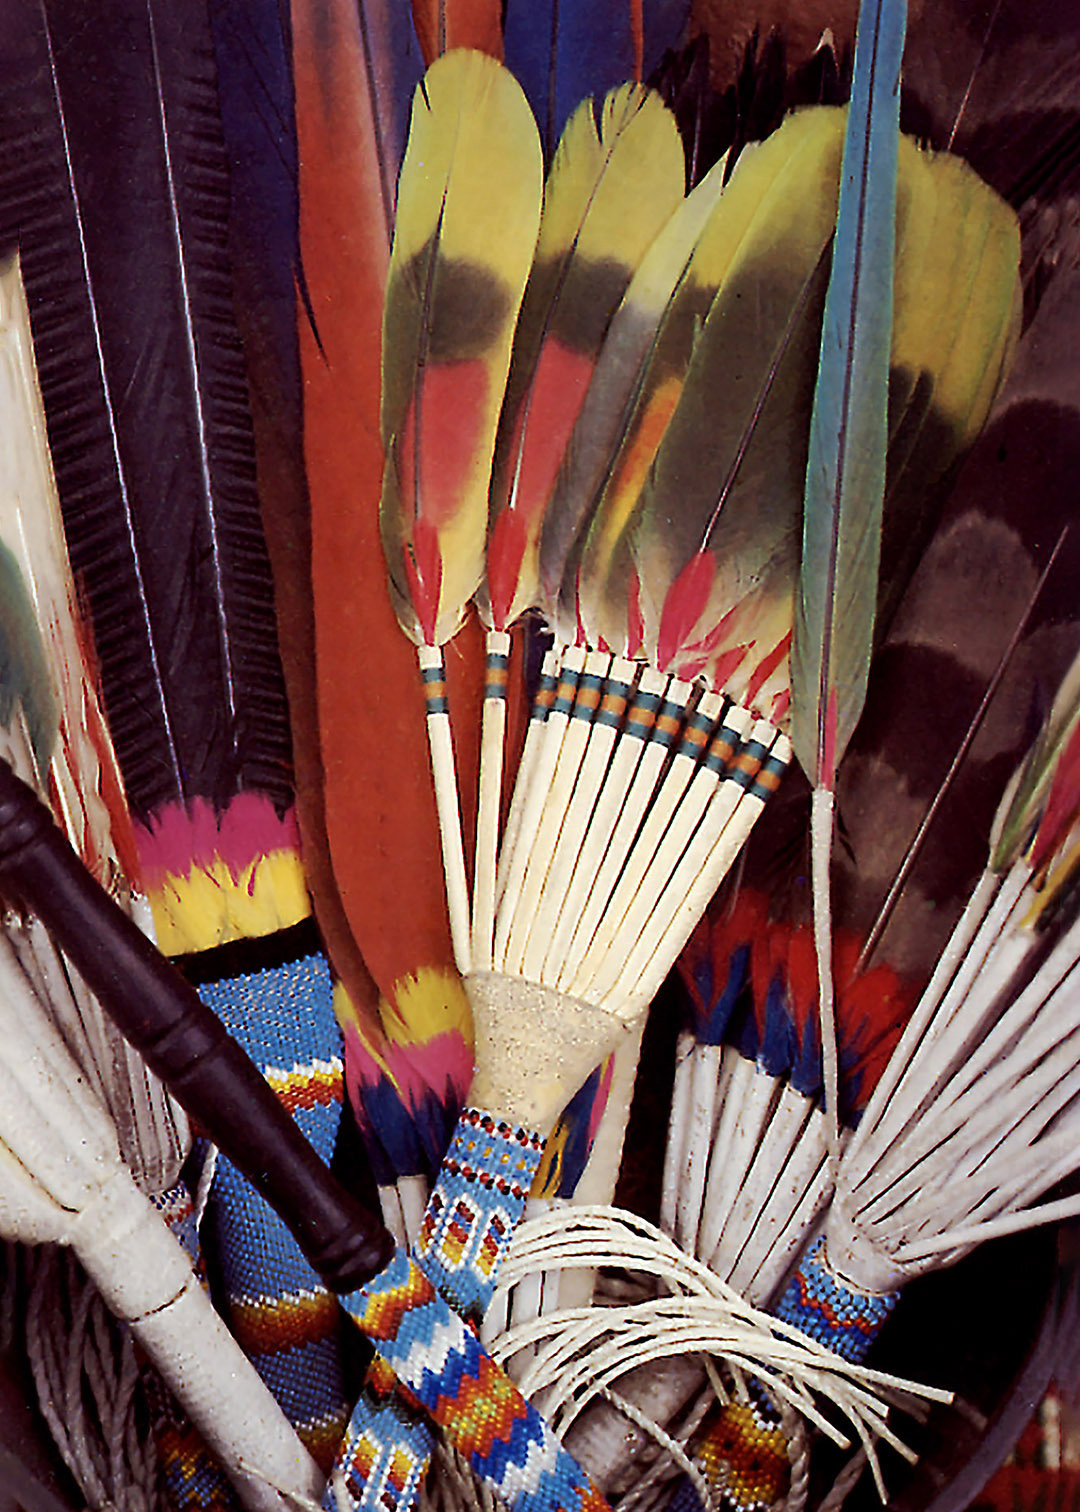 Ceremonial Fans - Taos, New Mexico - photograph by Gail Russell